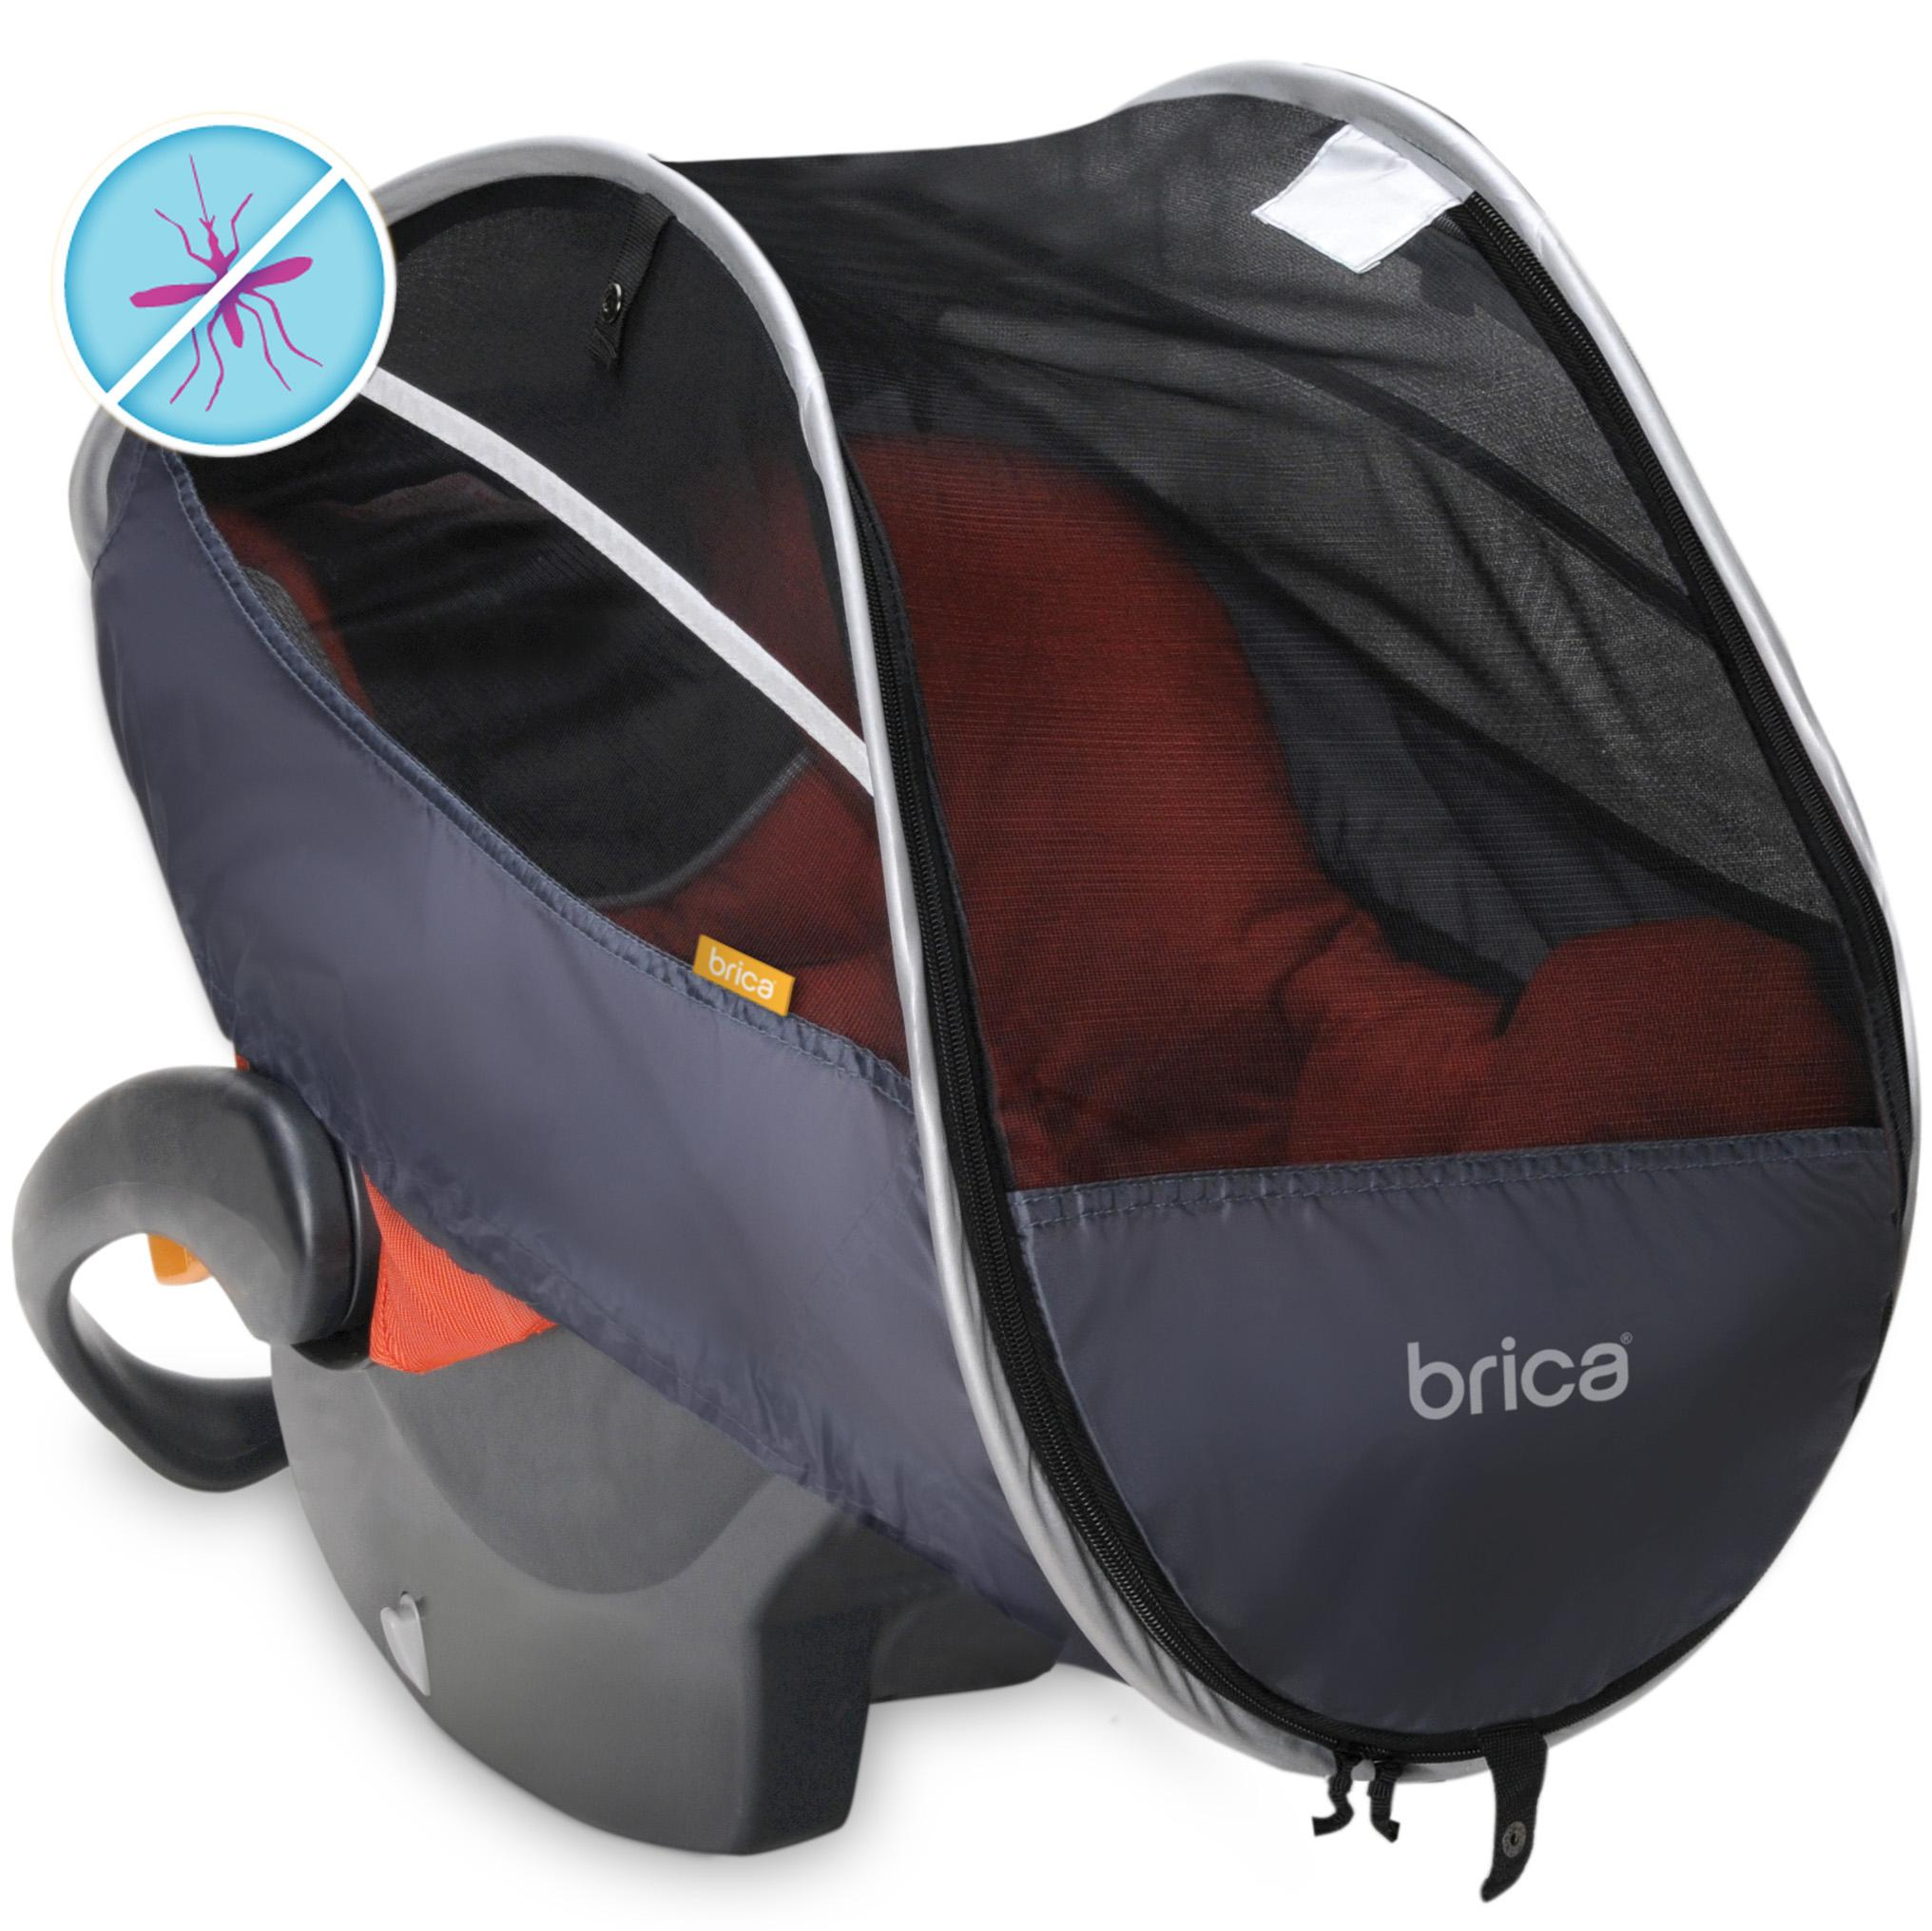 brica infant comfort canopy car seat cover baby. Black Bedroom Furniture Sets. Home Design Ideas